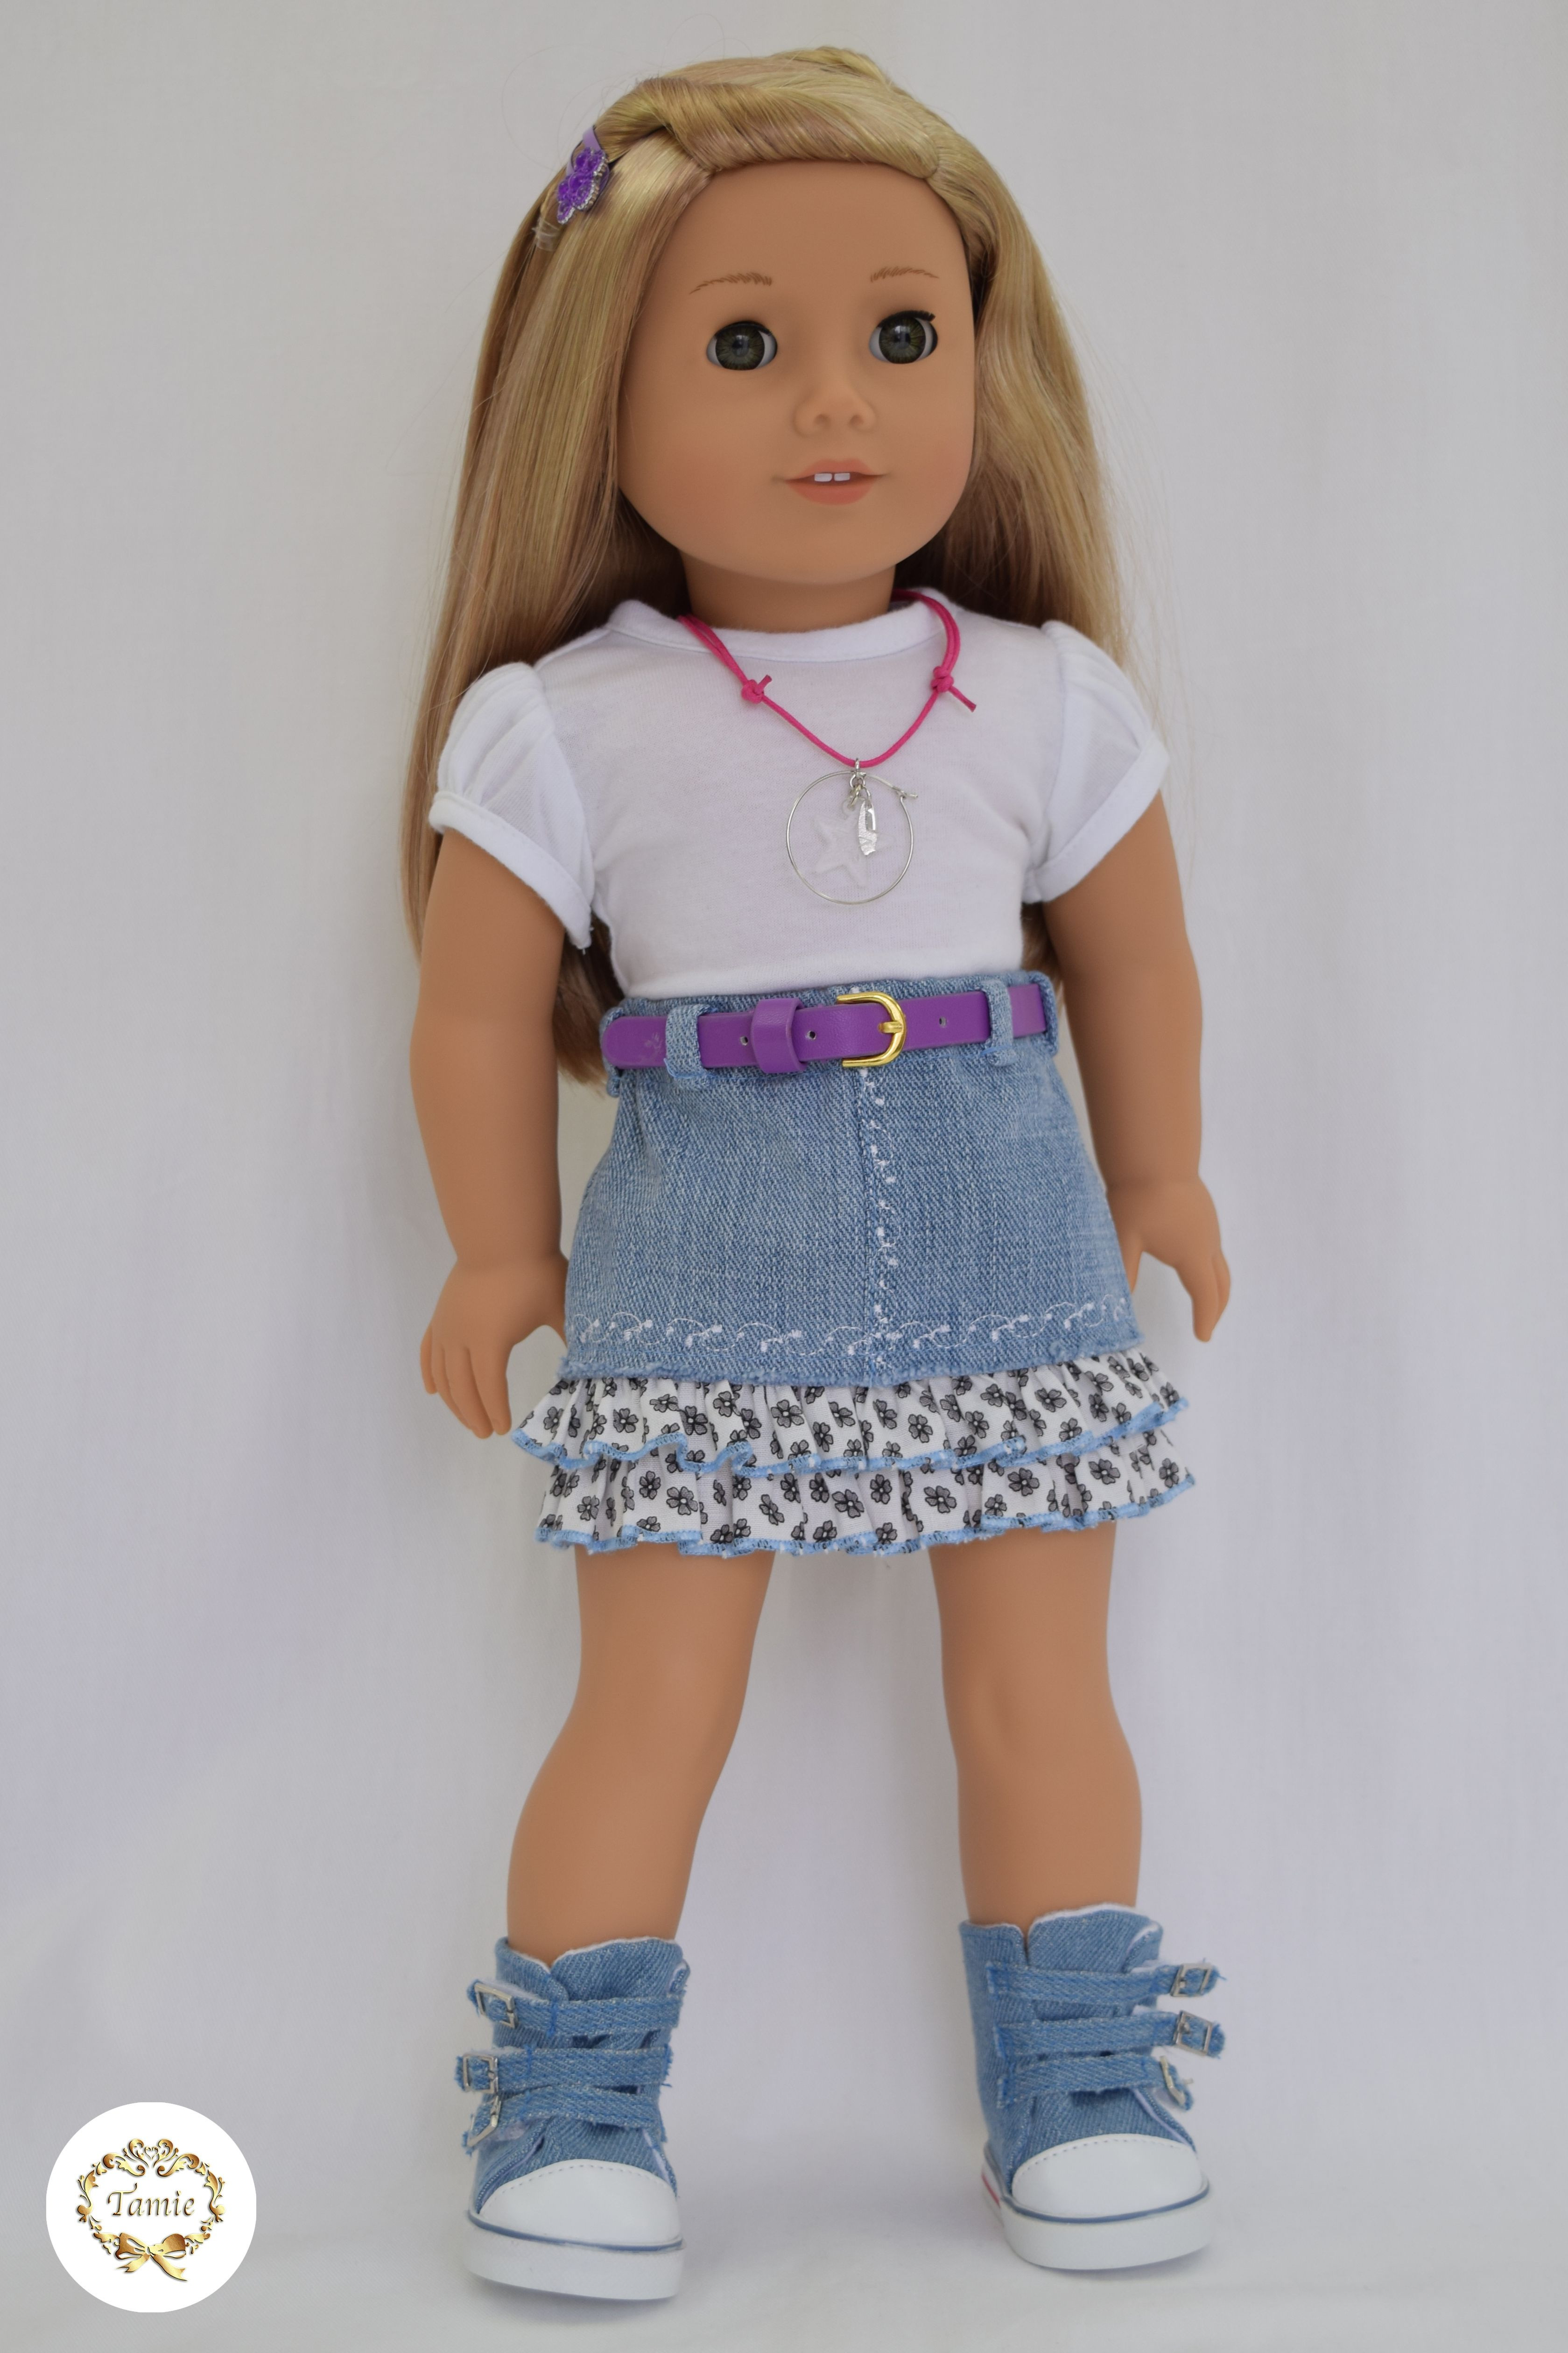 Unique Reserved for C & A Doll Clothes Pinterest American Girl Doll Skirts Of Incredible 50 Ideas American Girl Doll Skirts